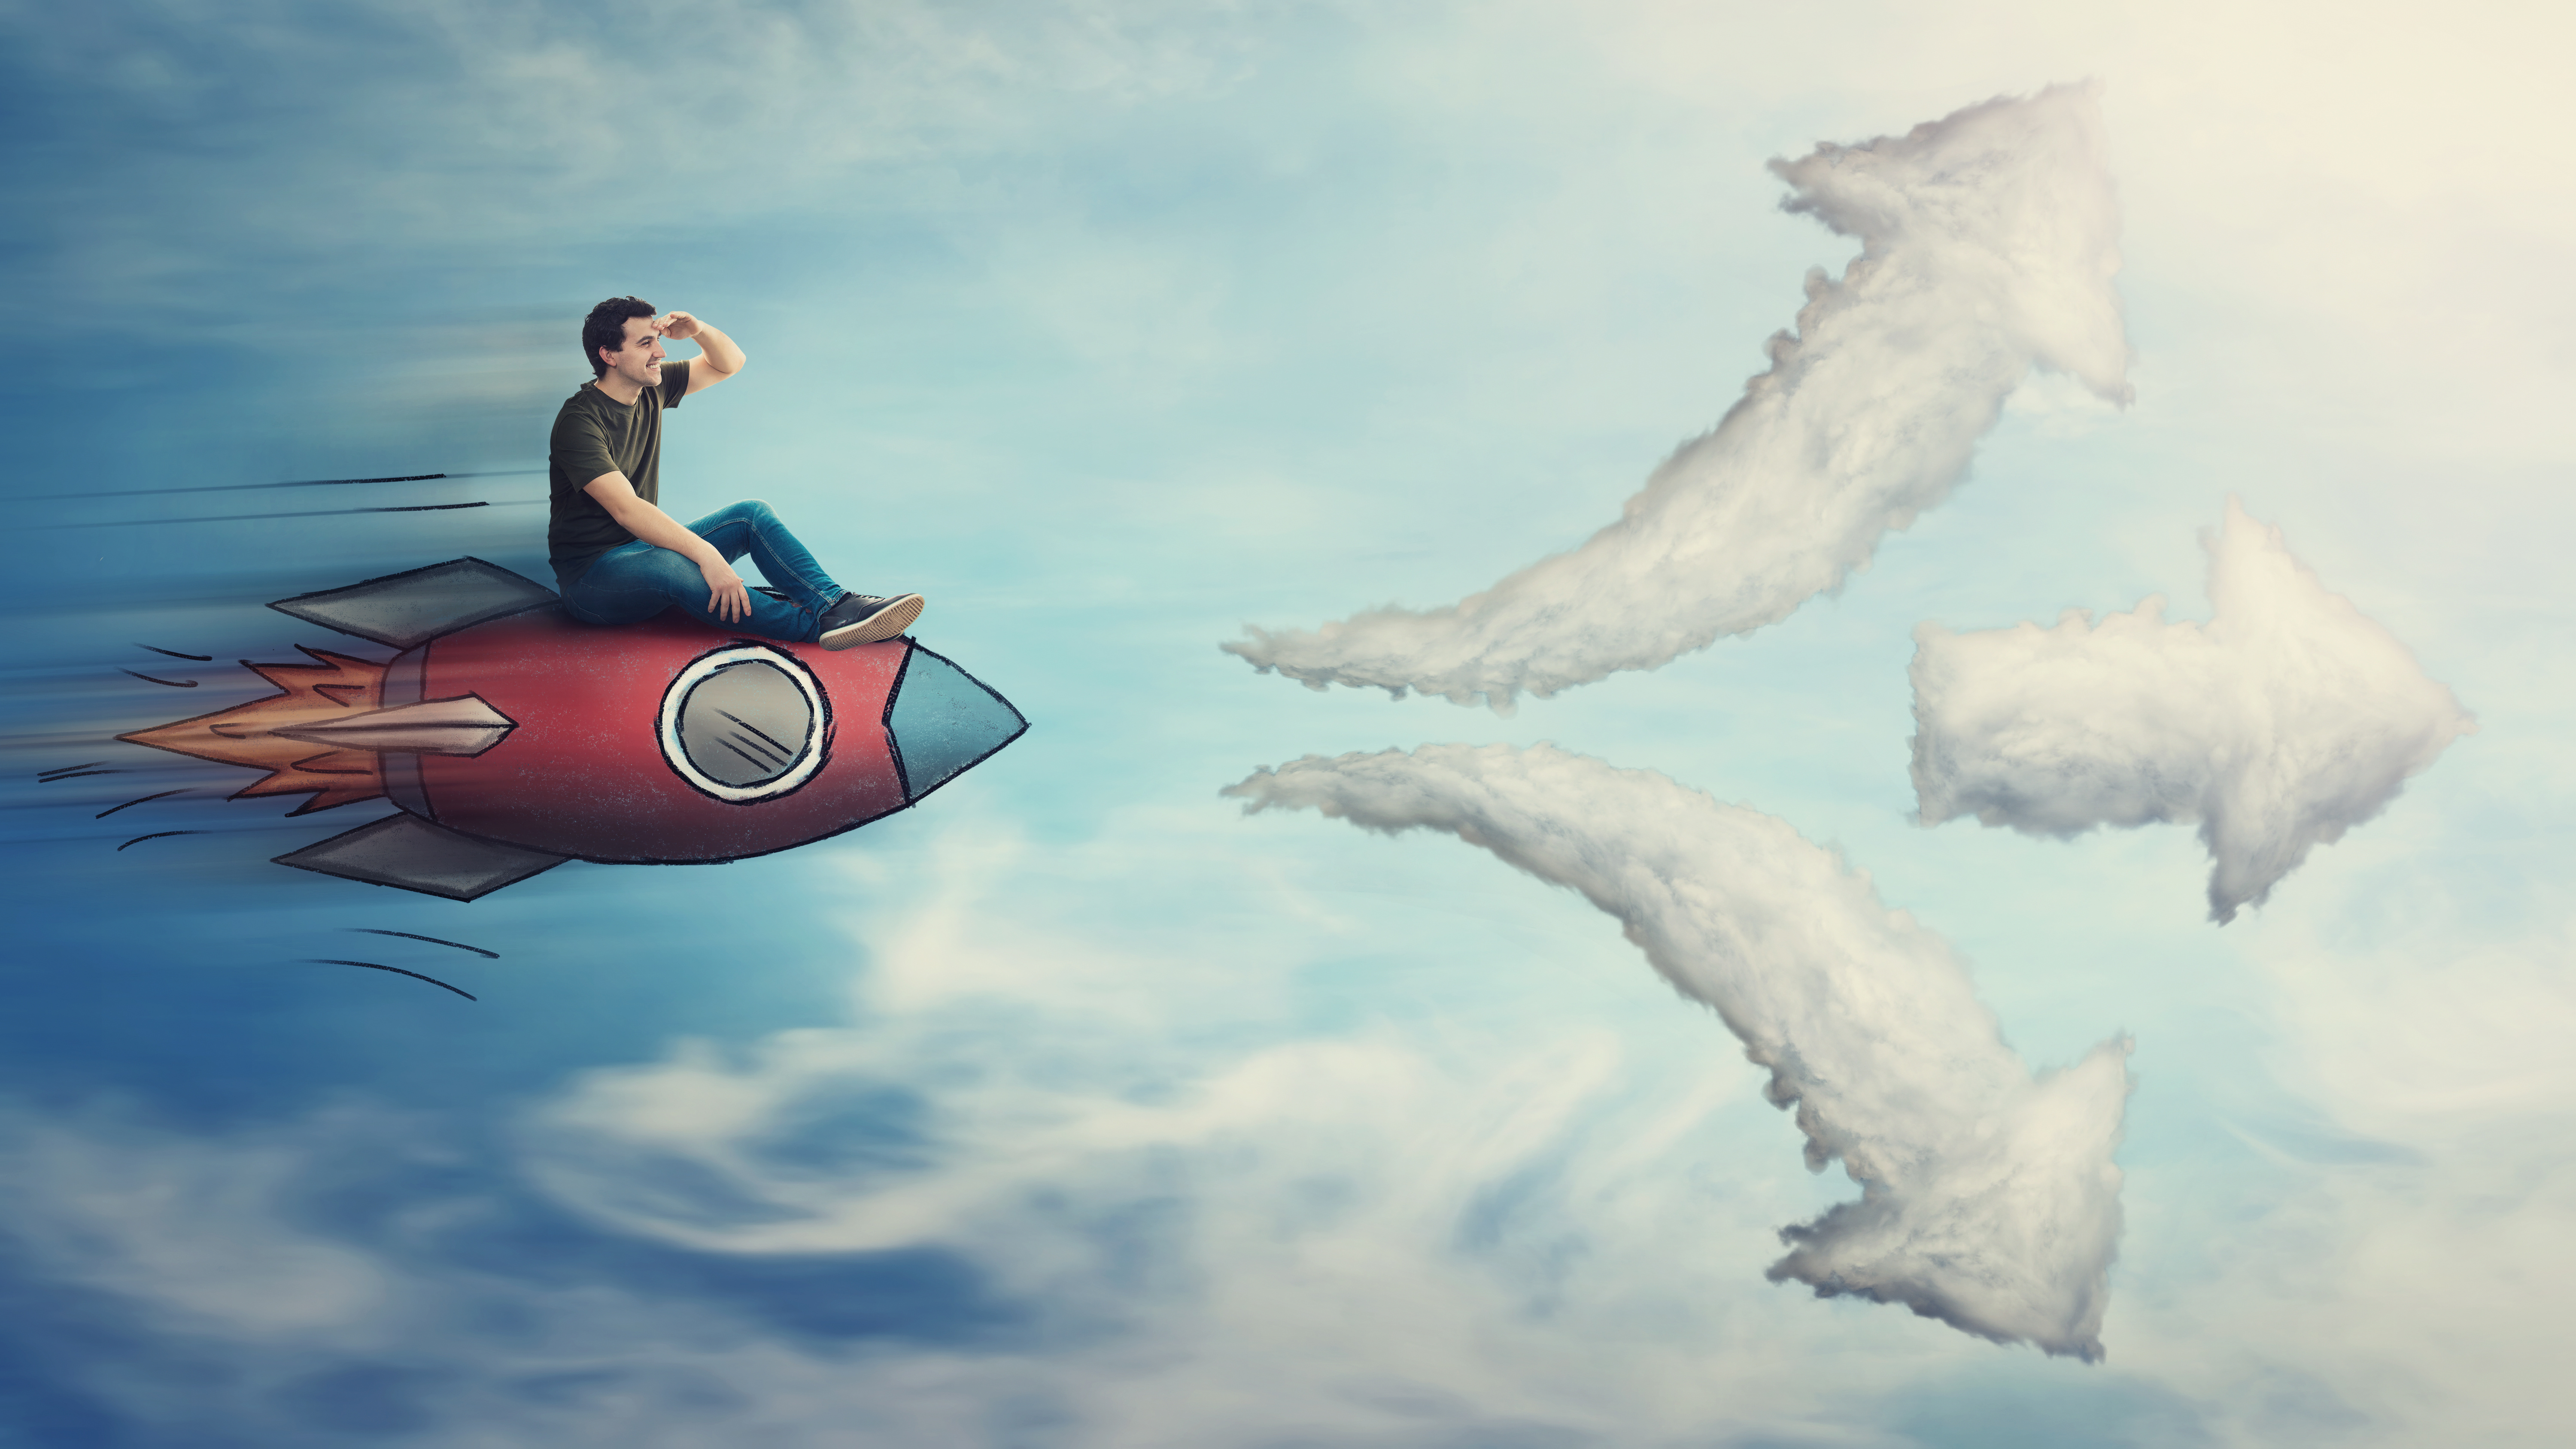 Guy flying on a fast rocket ship, hand to forehead looking far away for destination, has to choose a way as cloud arrows leads to three different directions.